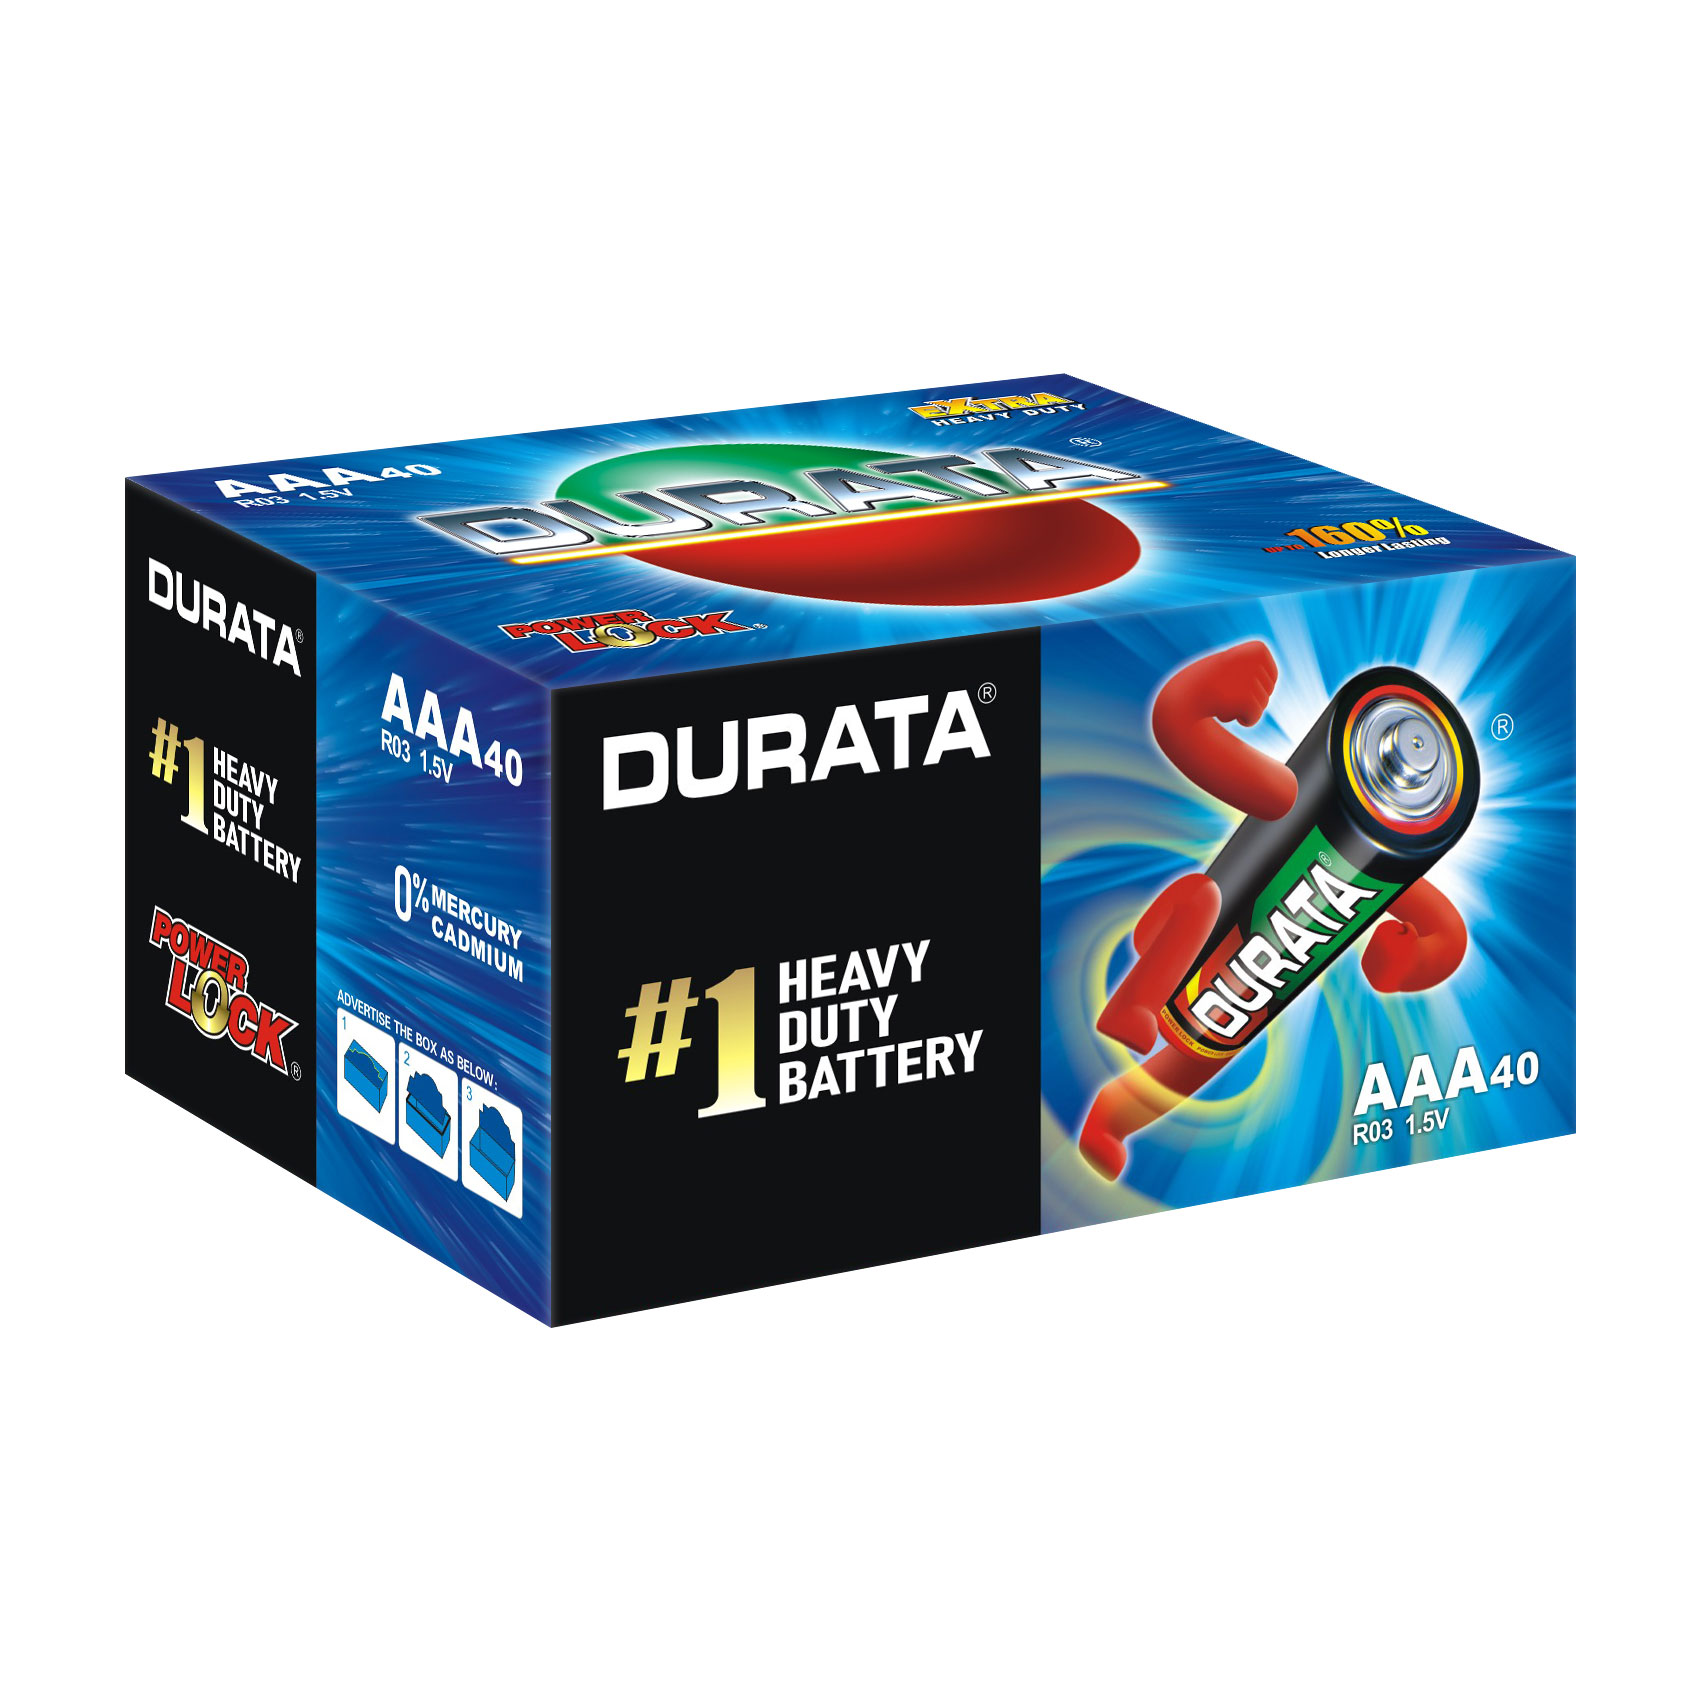 DURATA Size AAA - Shrink Pack 4 Batteries - box